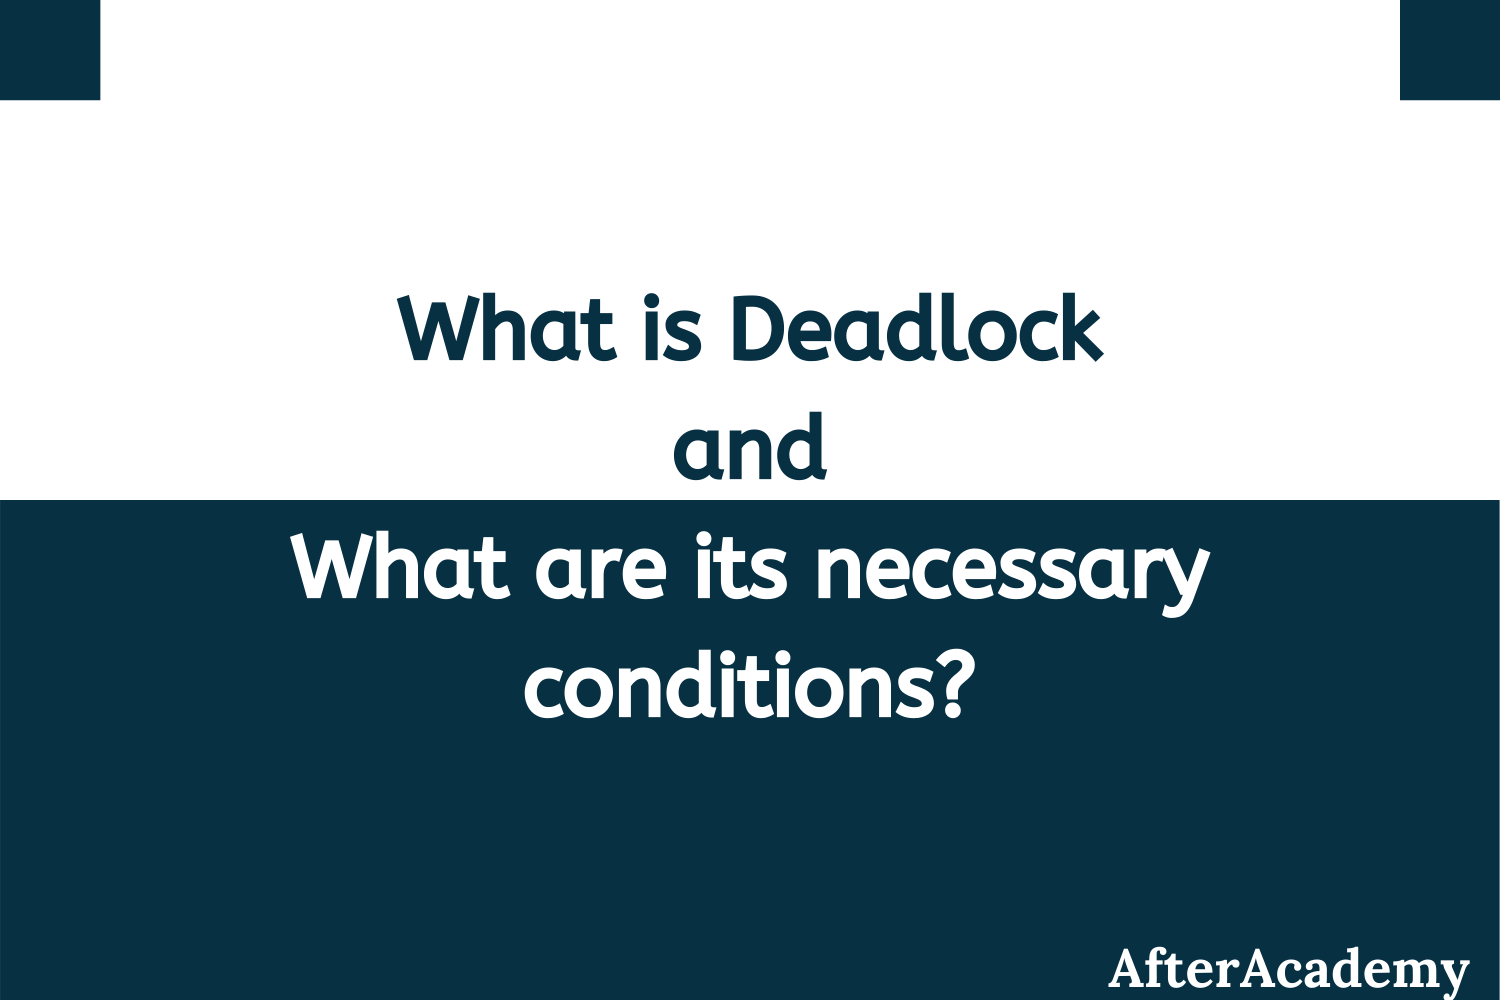 What is Deadlock and what are its four necessary conditions?